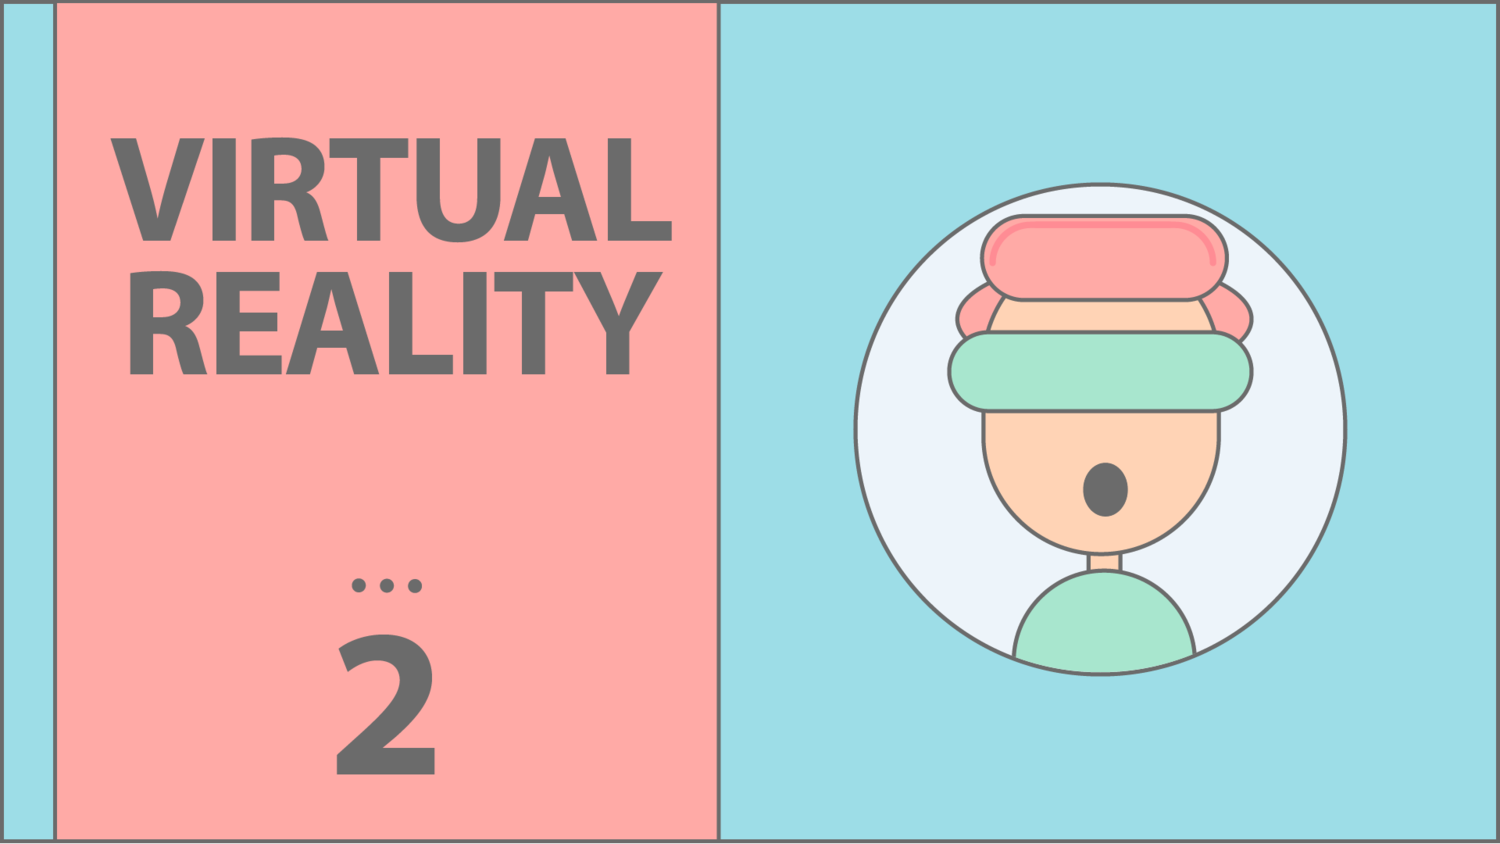 virtual world is taking us away from real world